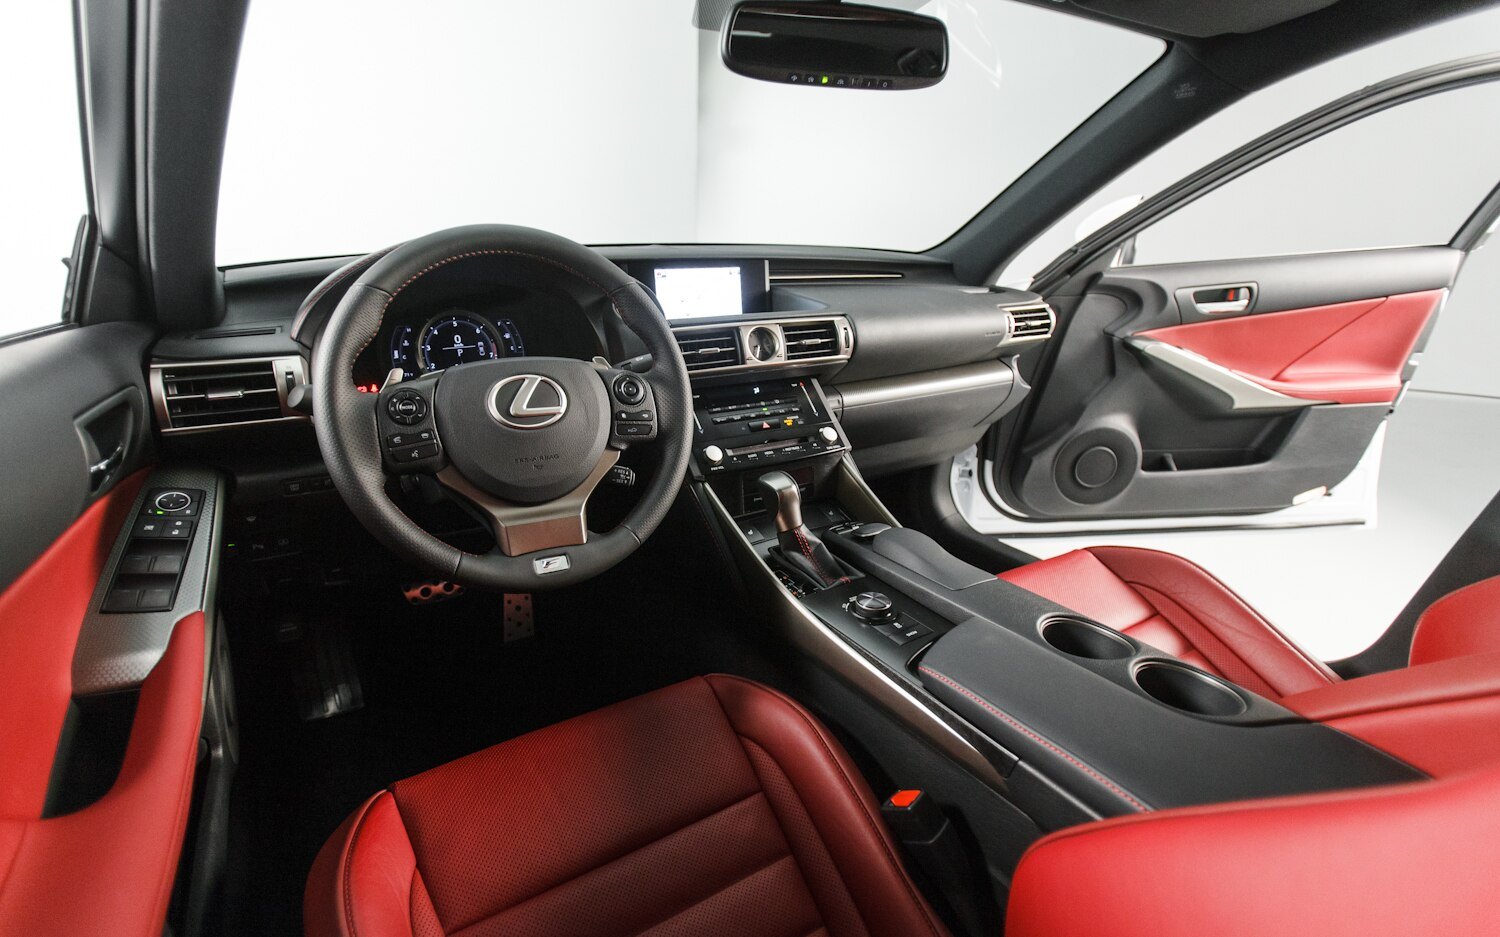 First Look 2014 Lexus IS250 and IS350  Automobile Magazine